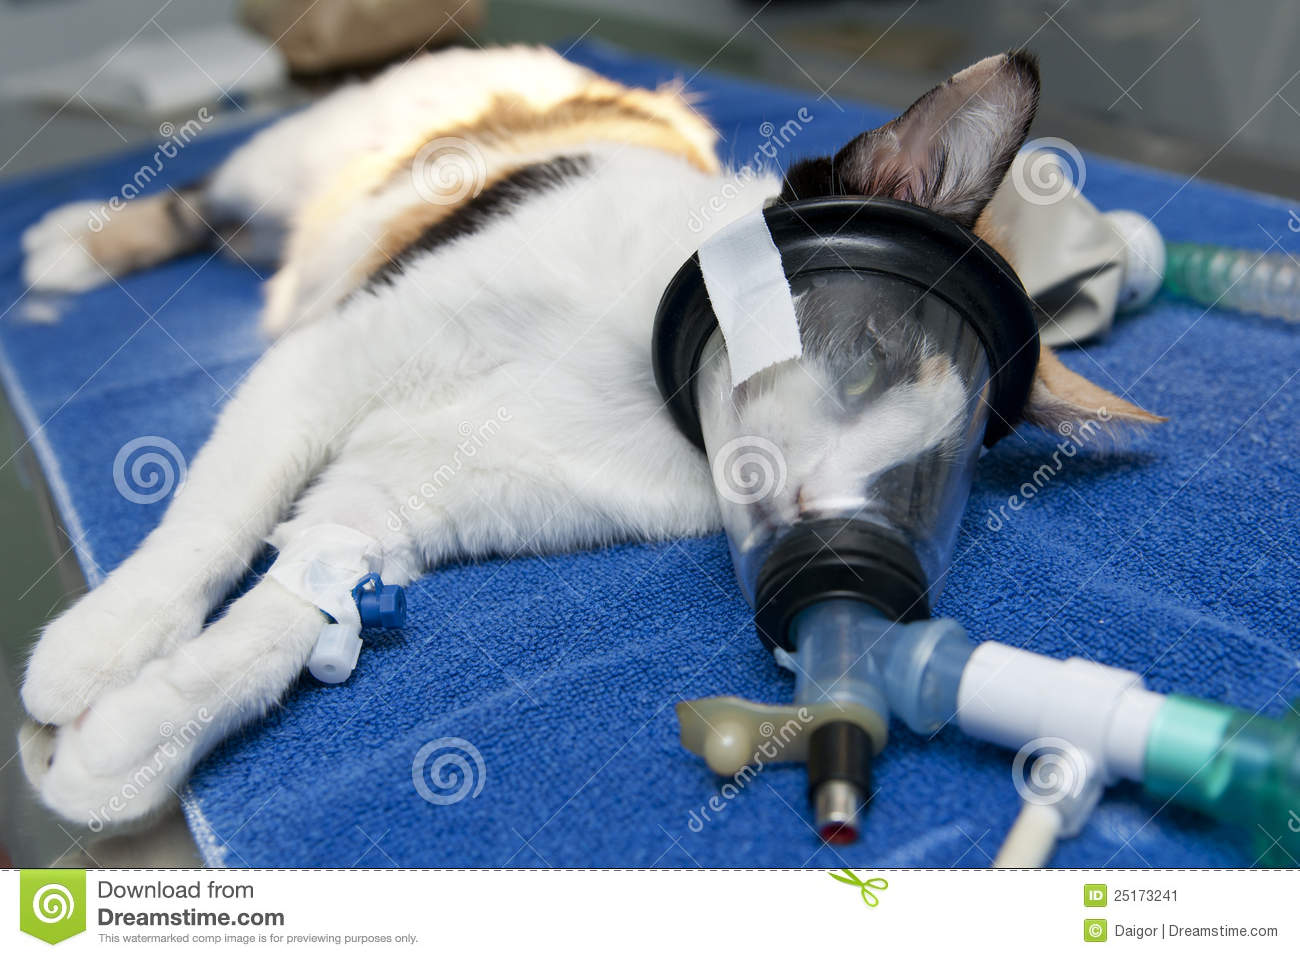 Cat anesthesia